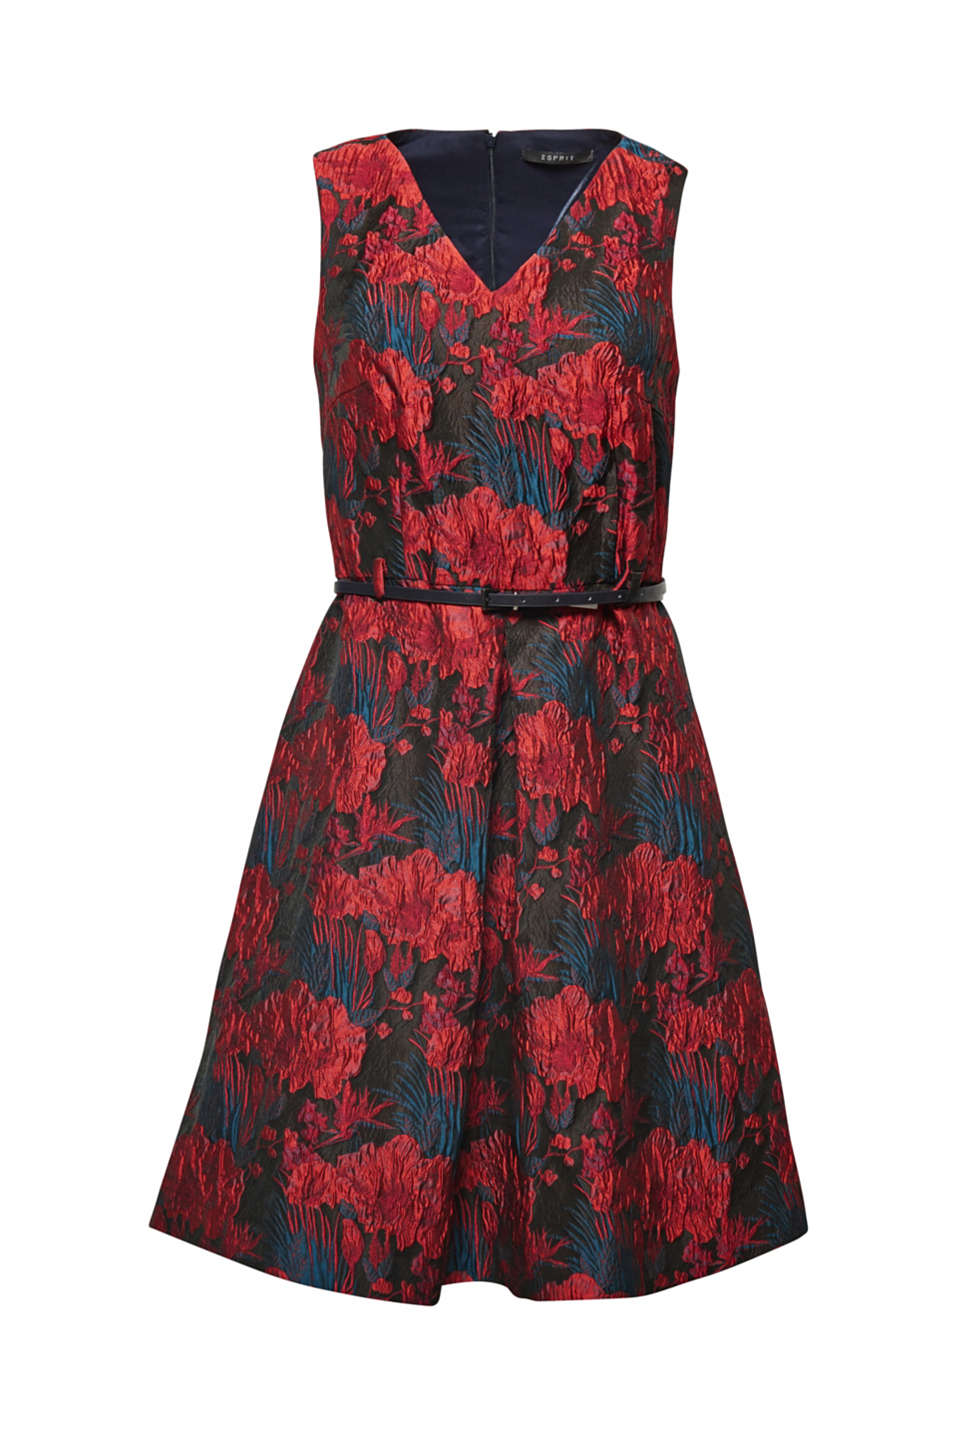 Elaborate jacquard flowers with a relief texture and a subtle sheen give this dress with a slightly flared skirt and central front pleat its exclusive charm!